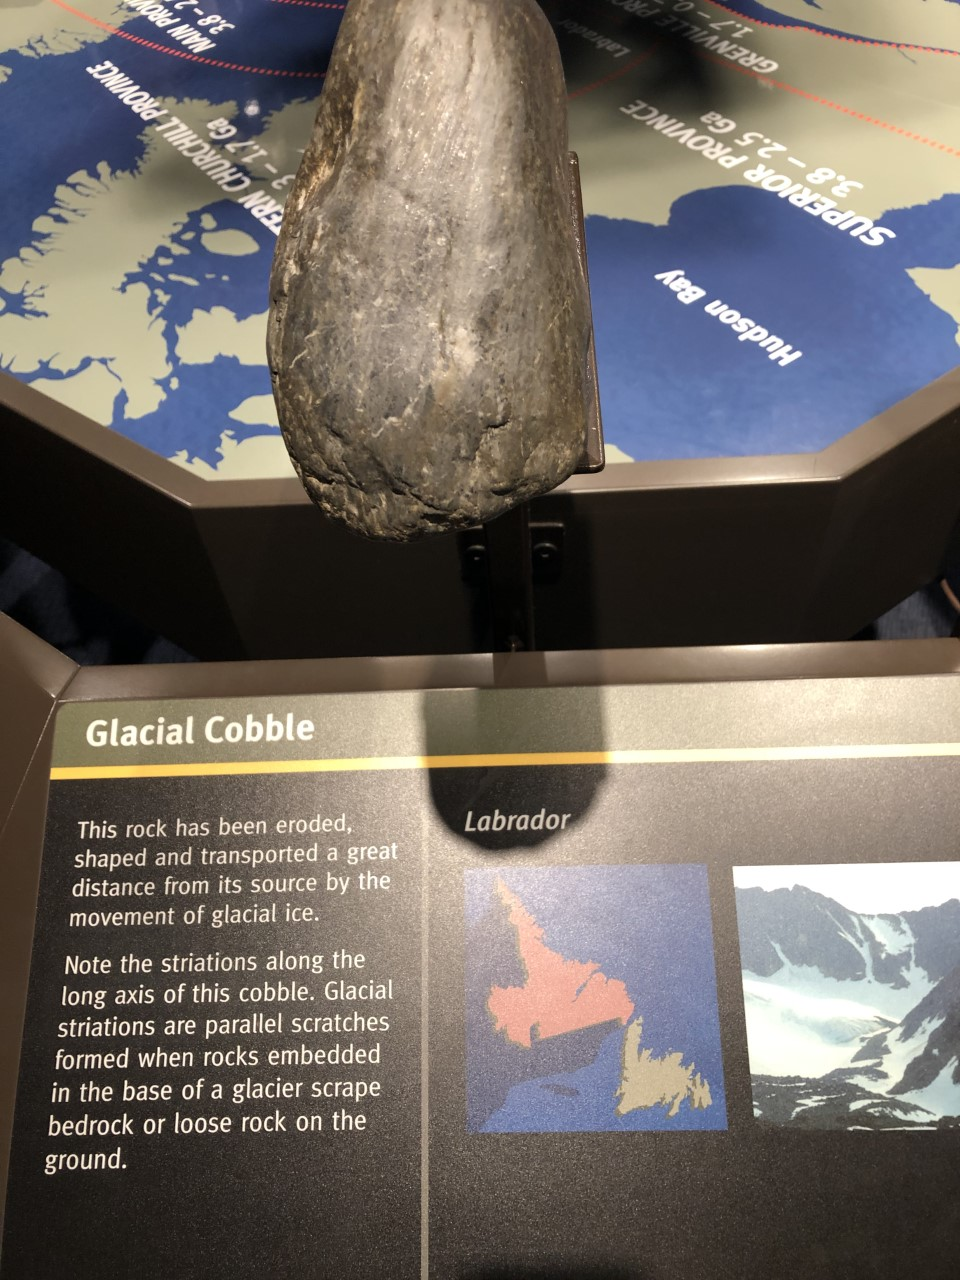 The Geocenter is a museum dedicated to the earth science of the province. They had thousands of rocks, some of which were over 1 billion years old! This glacial cobble made me think of the work we are doing in 5th grade on constructive and destructive forces of landforms.